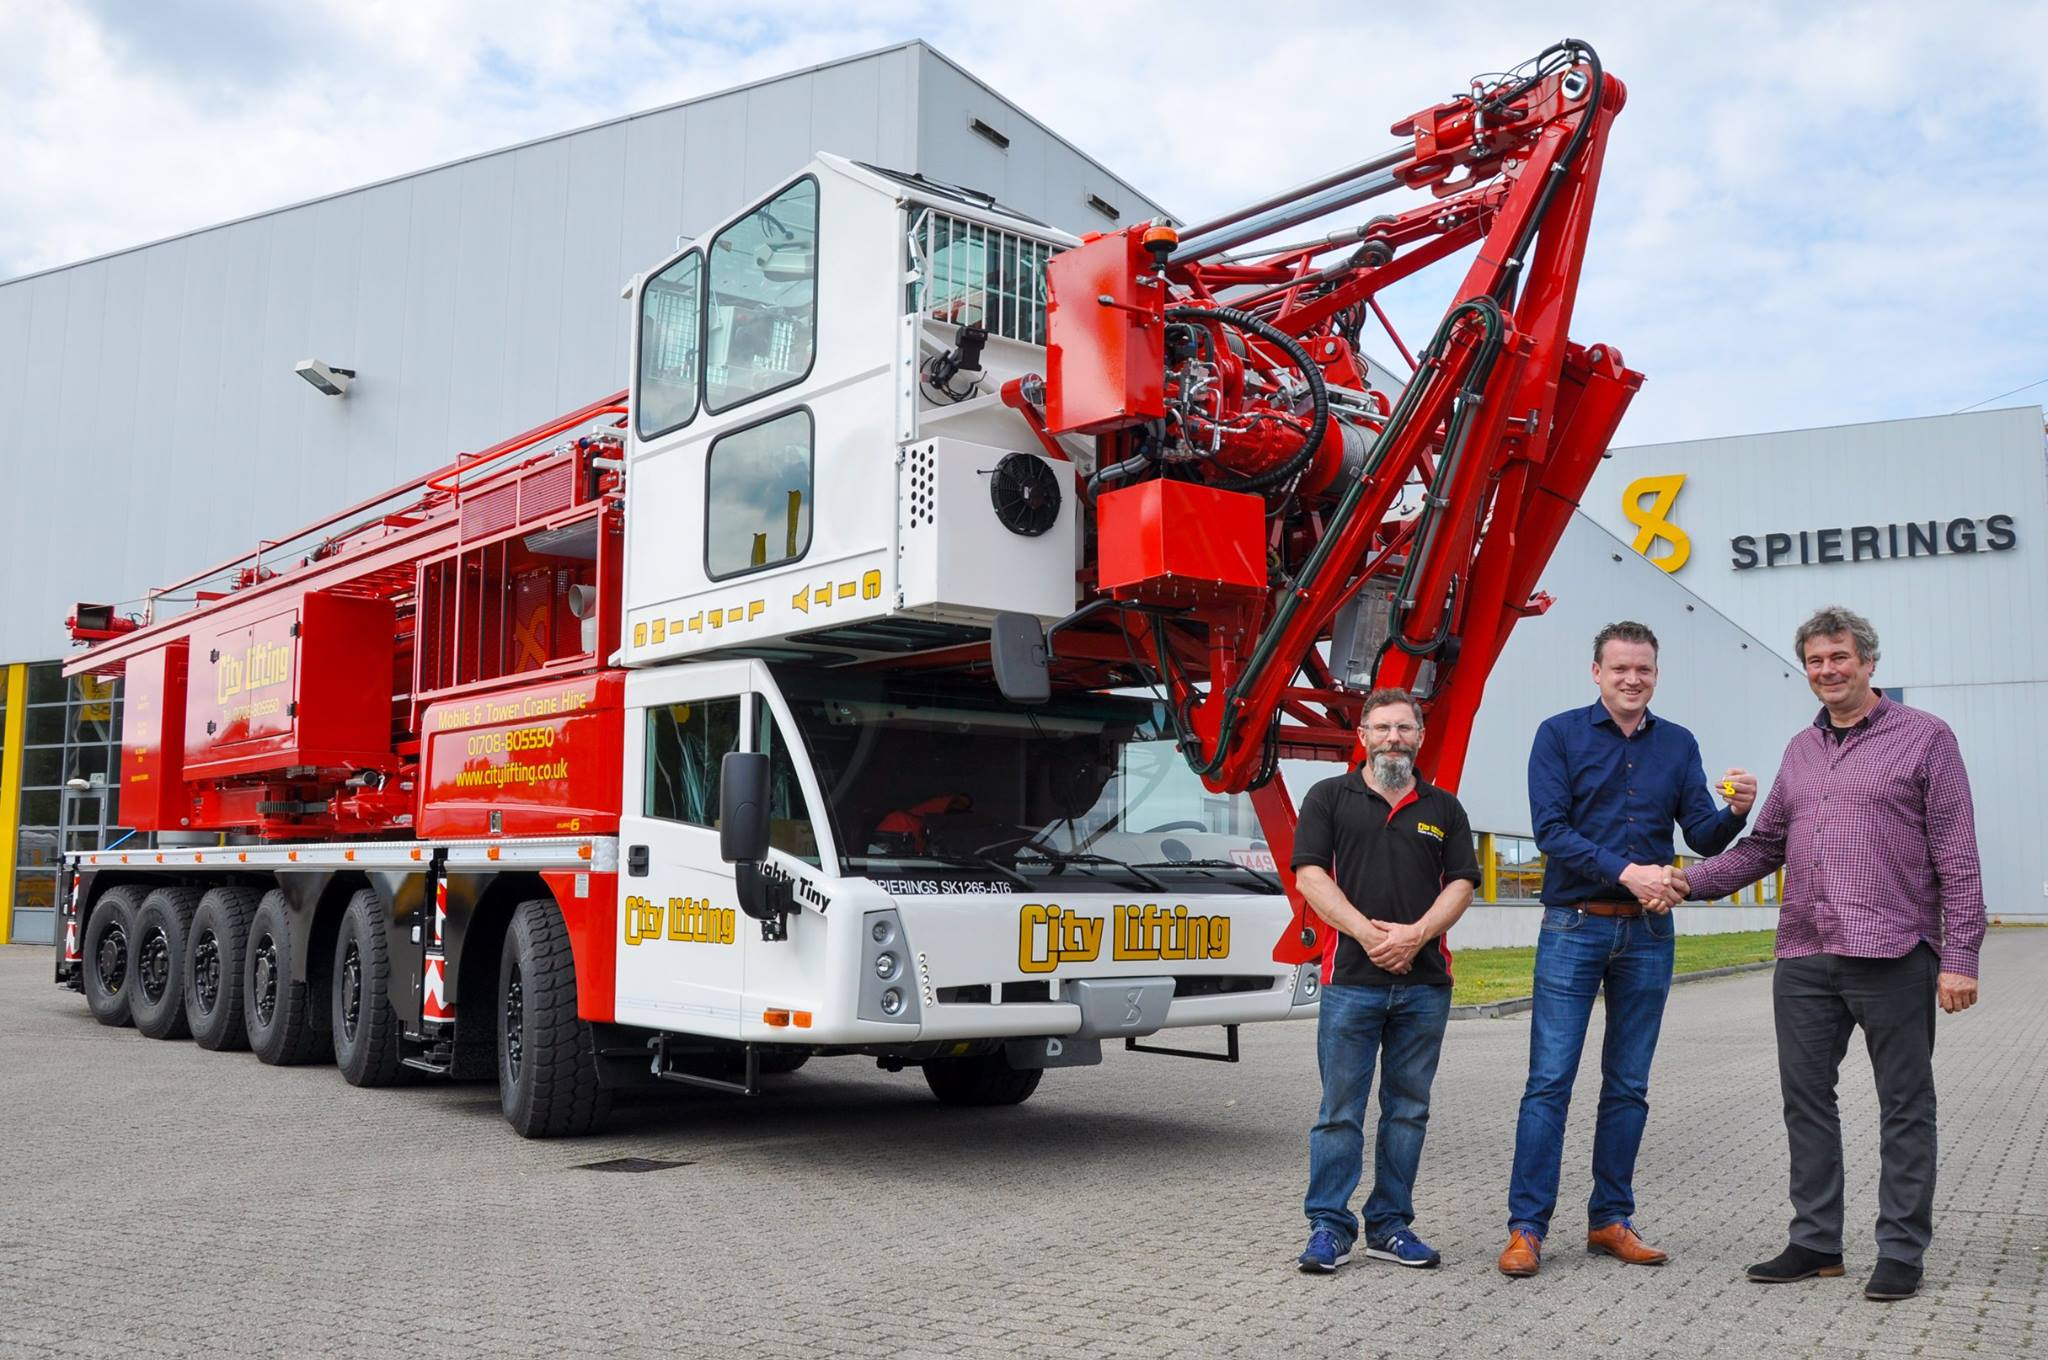 City Lifting - SK1265-AT6 - Spierings Mobile Cranes